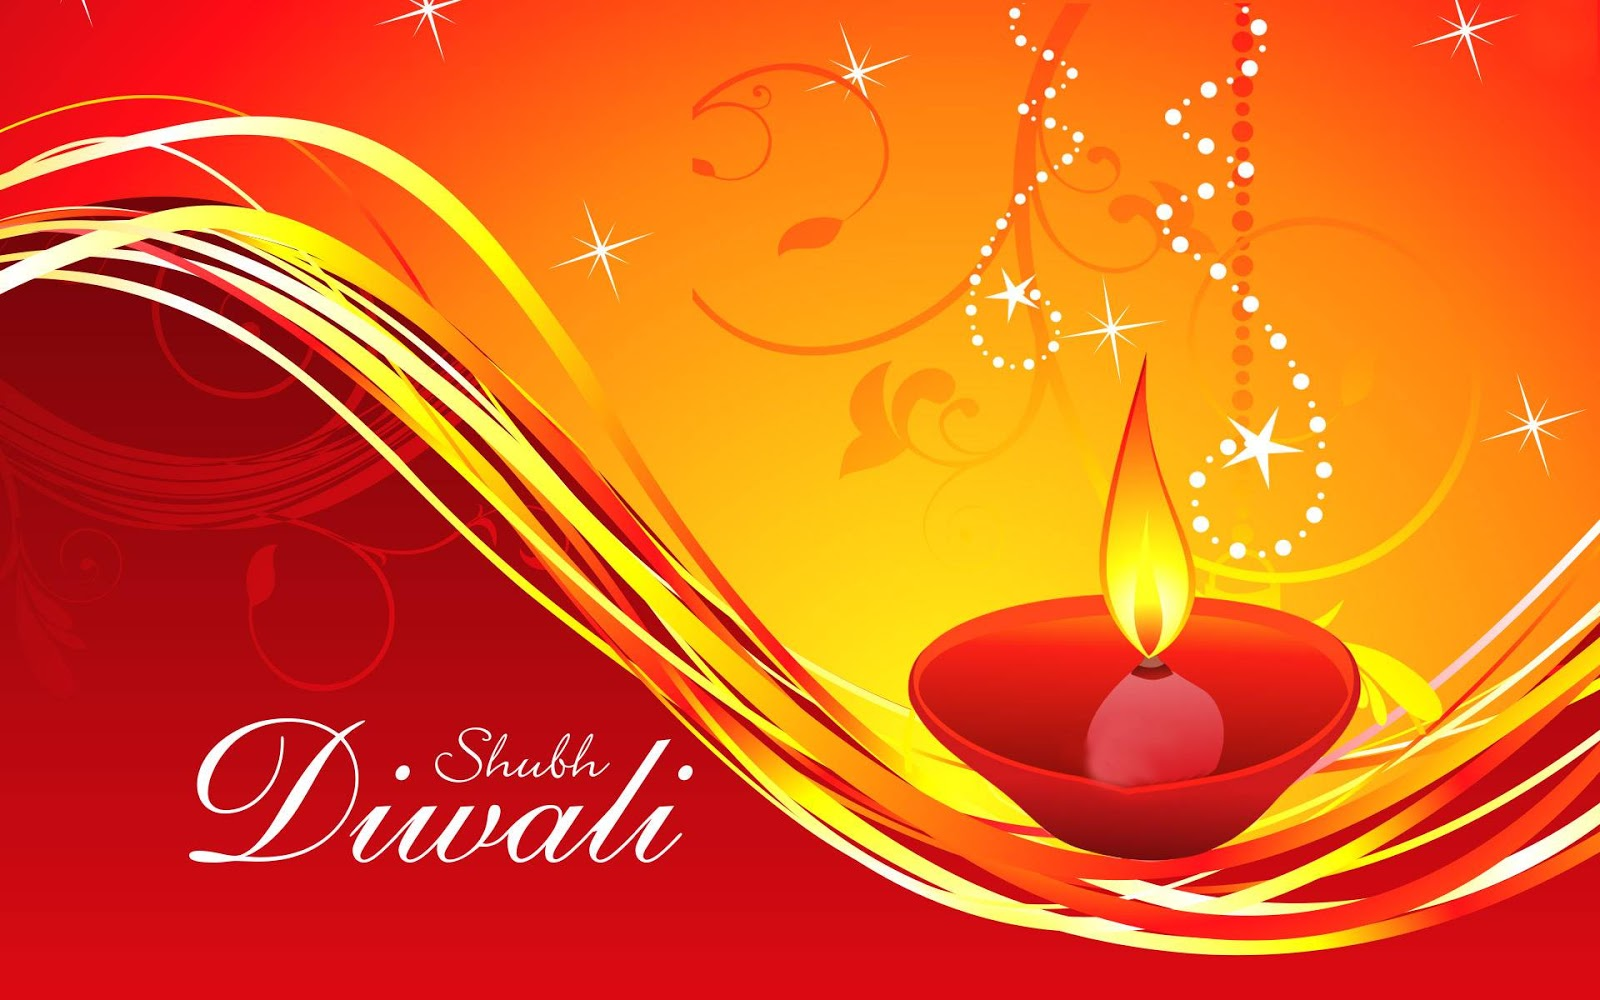 880 happy diwali greetings 2017 4k images sms hindi english happy diwali greetigs 2017 best kristyandbryce Gallery